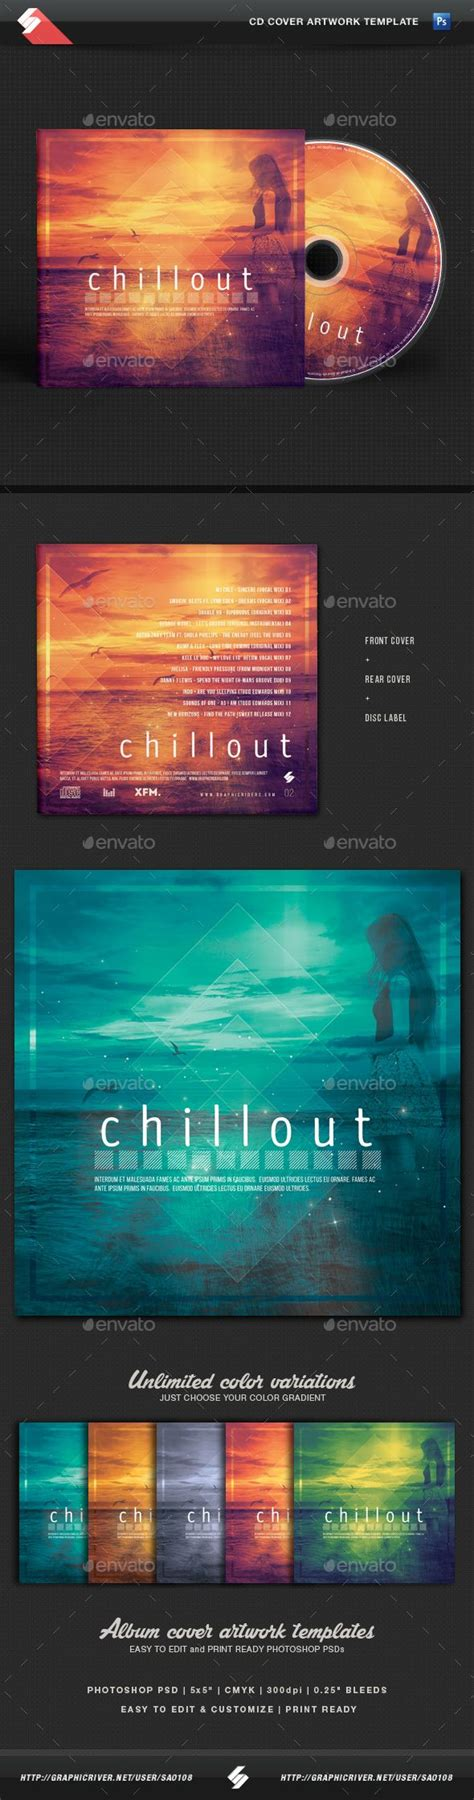 Chillout Vol 2 Atmospheric Cd Cover Artwork Template Pinterest Cd Cover Template And Artwork Podcast Artwork Template